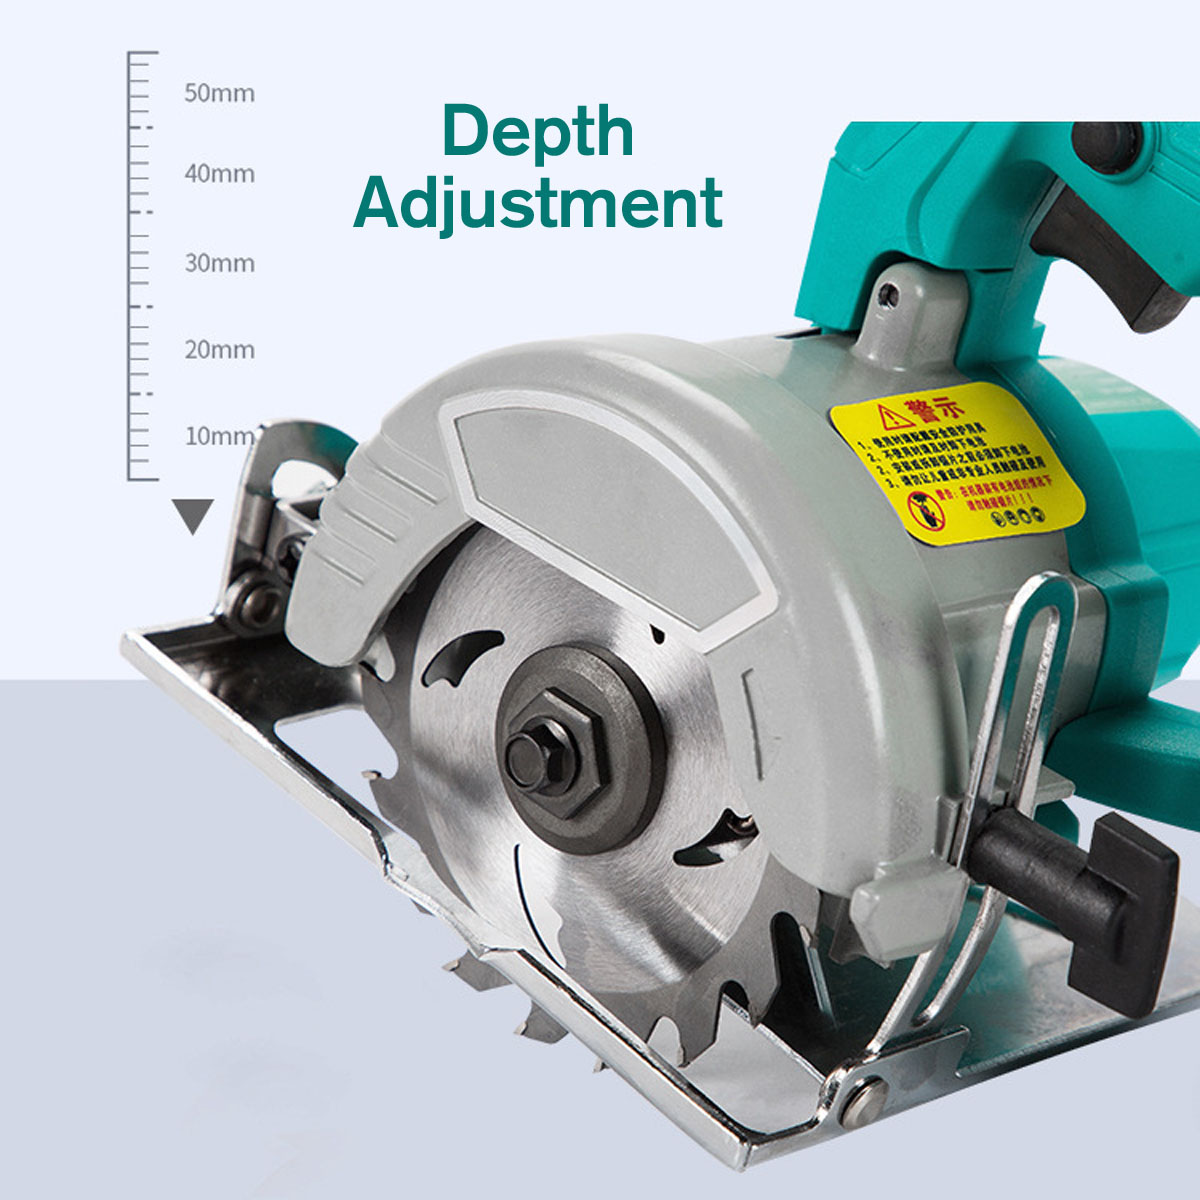 For 1500W Handle Makita Tools Power Passage Circular Battery Saw Multifunction Cutting Electric 18V Machine Dust